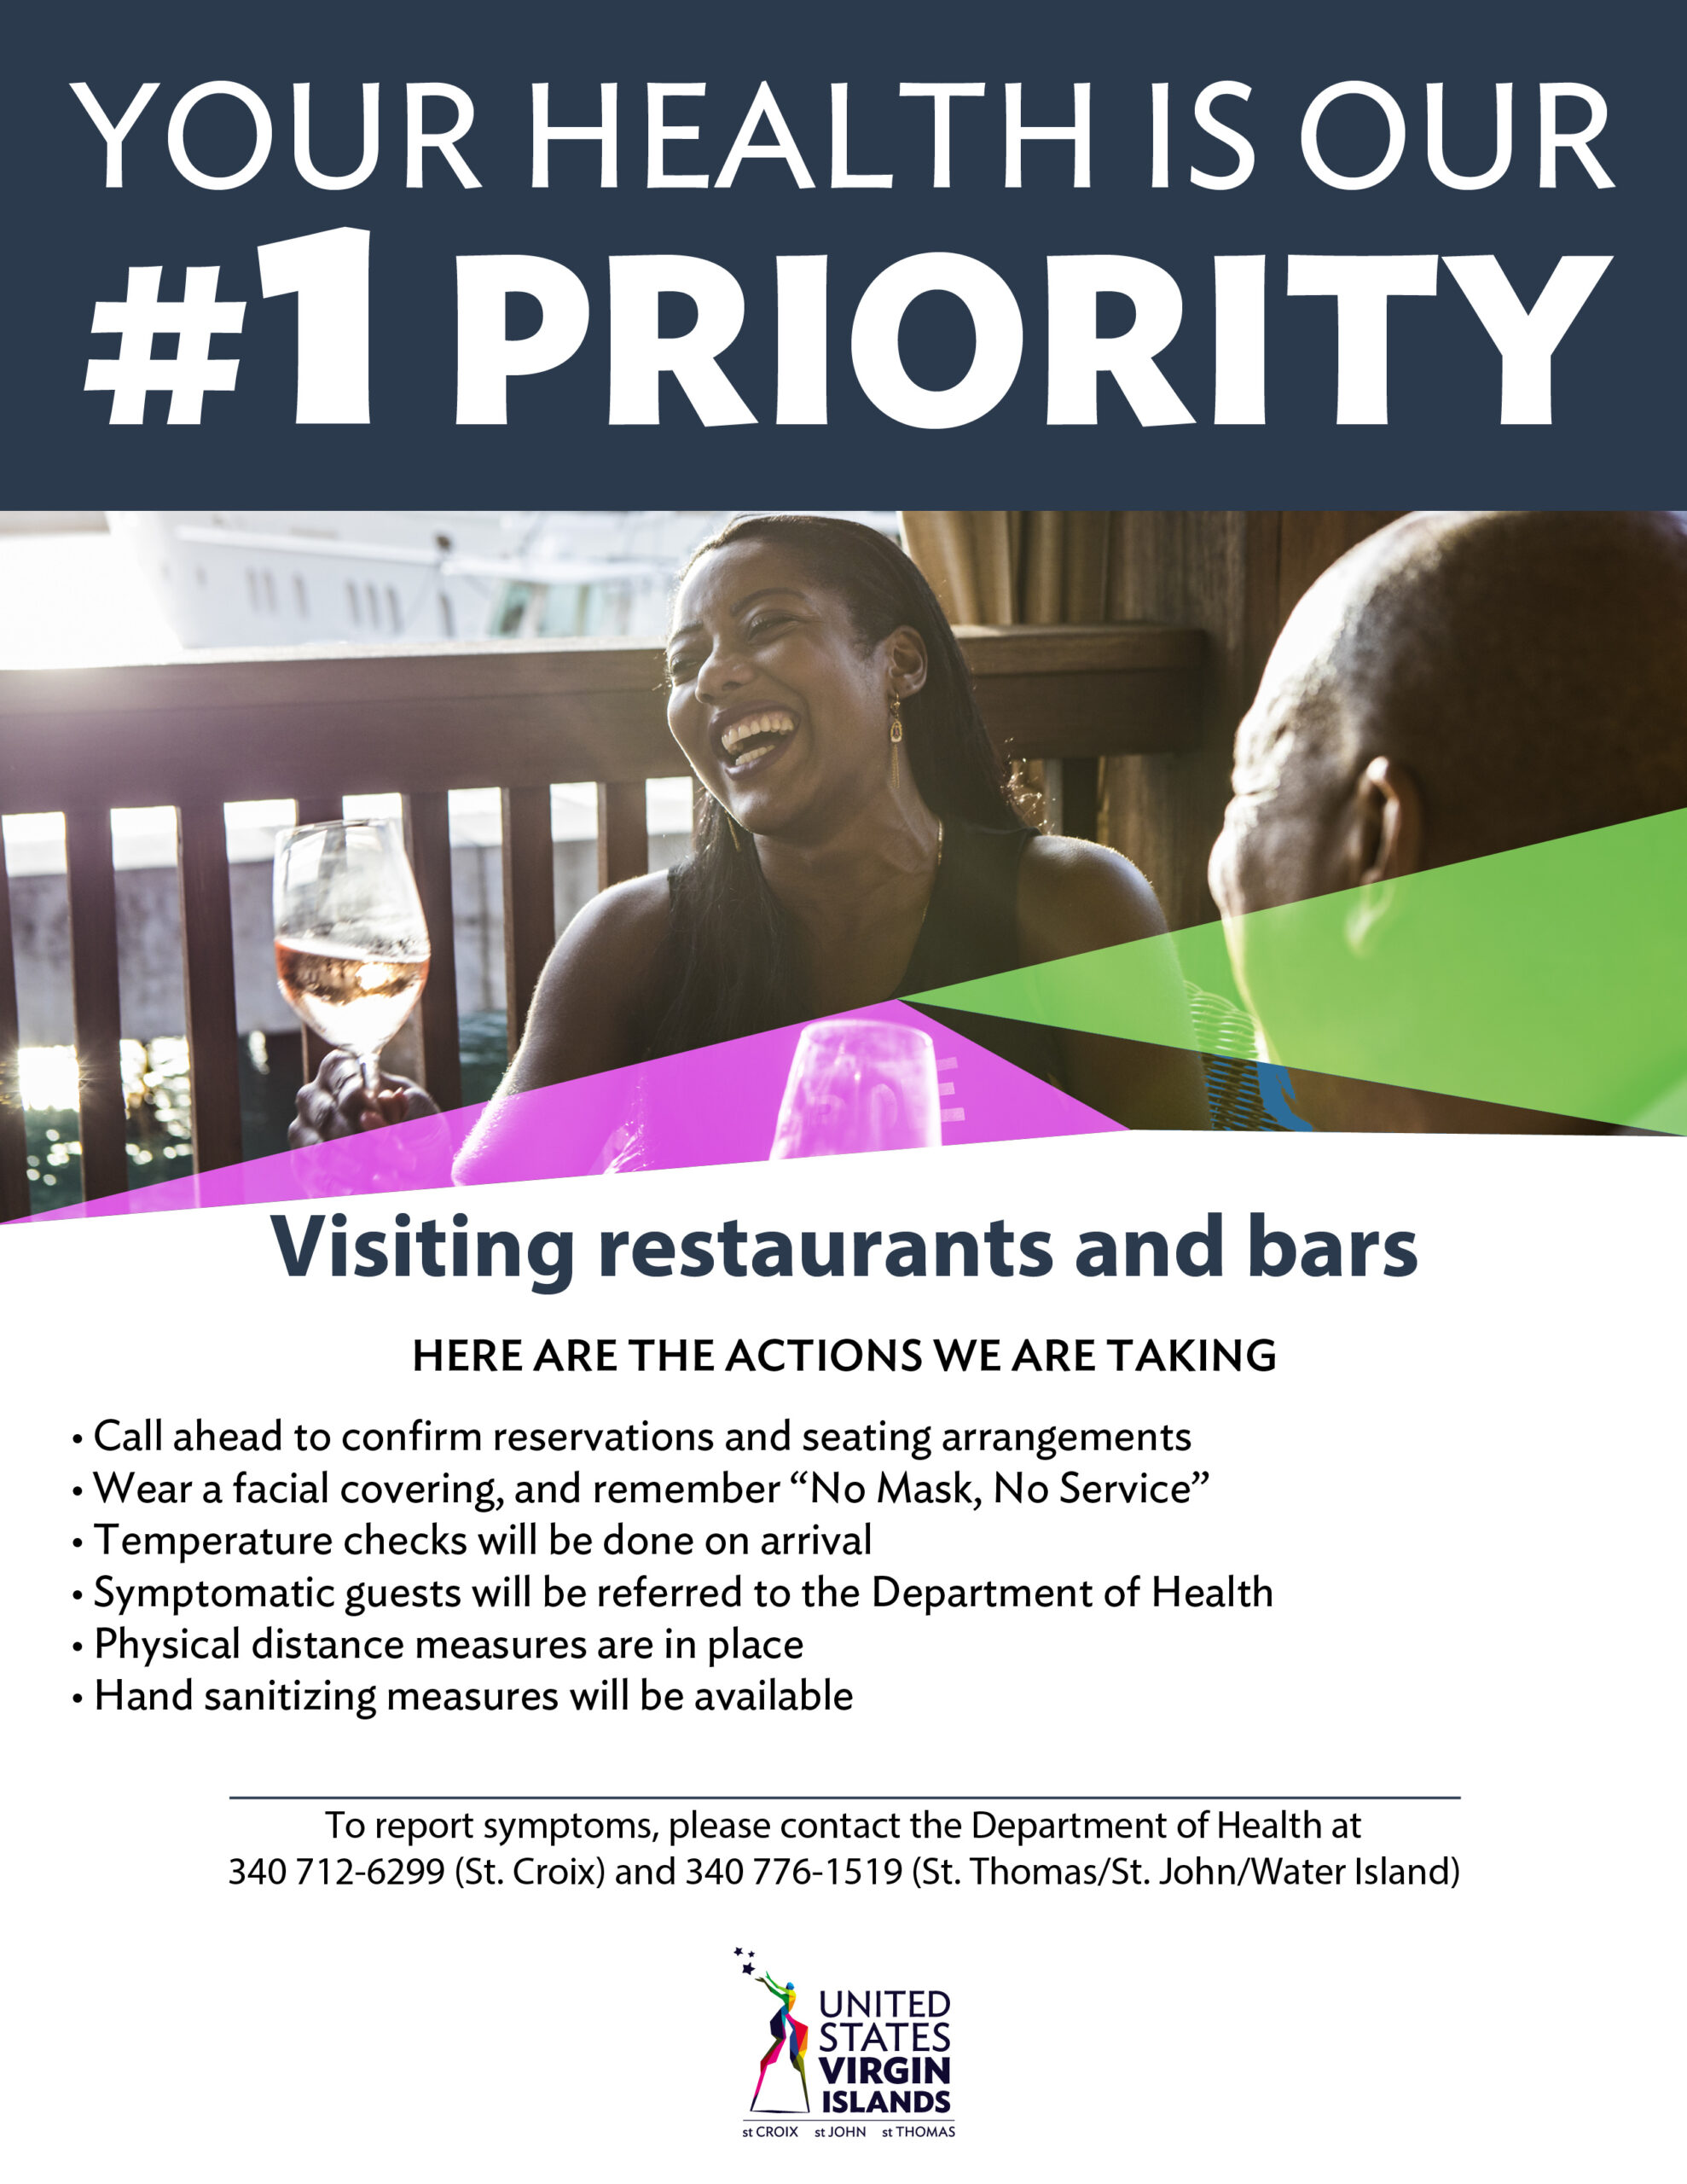 Visiting Restaurants and Bars Safety Guidelines